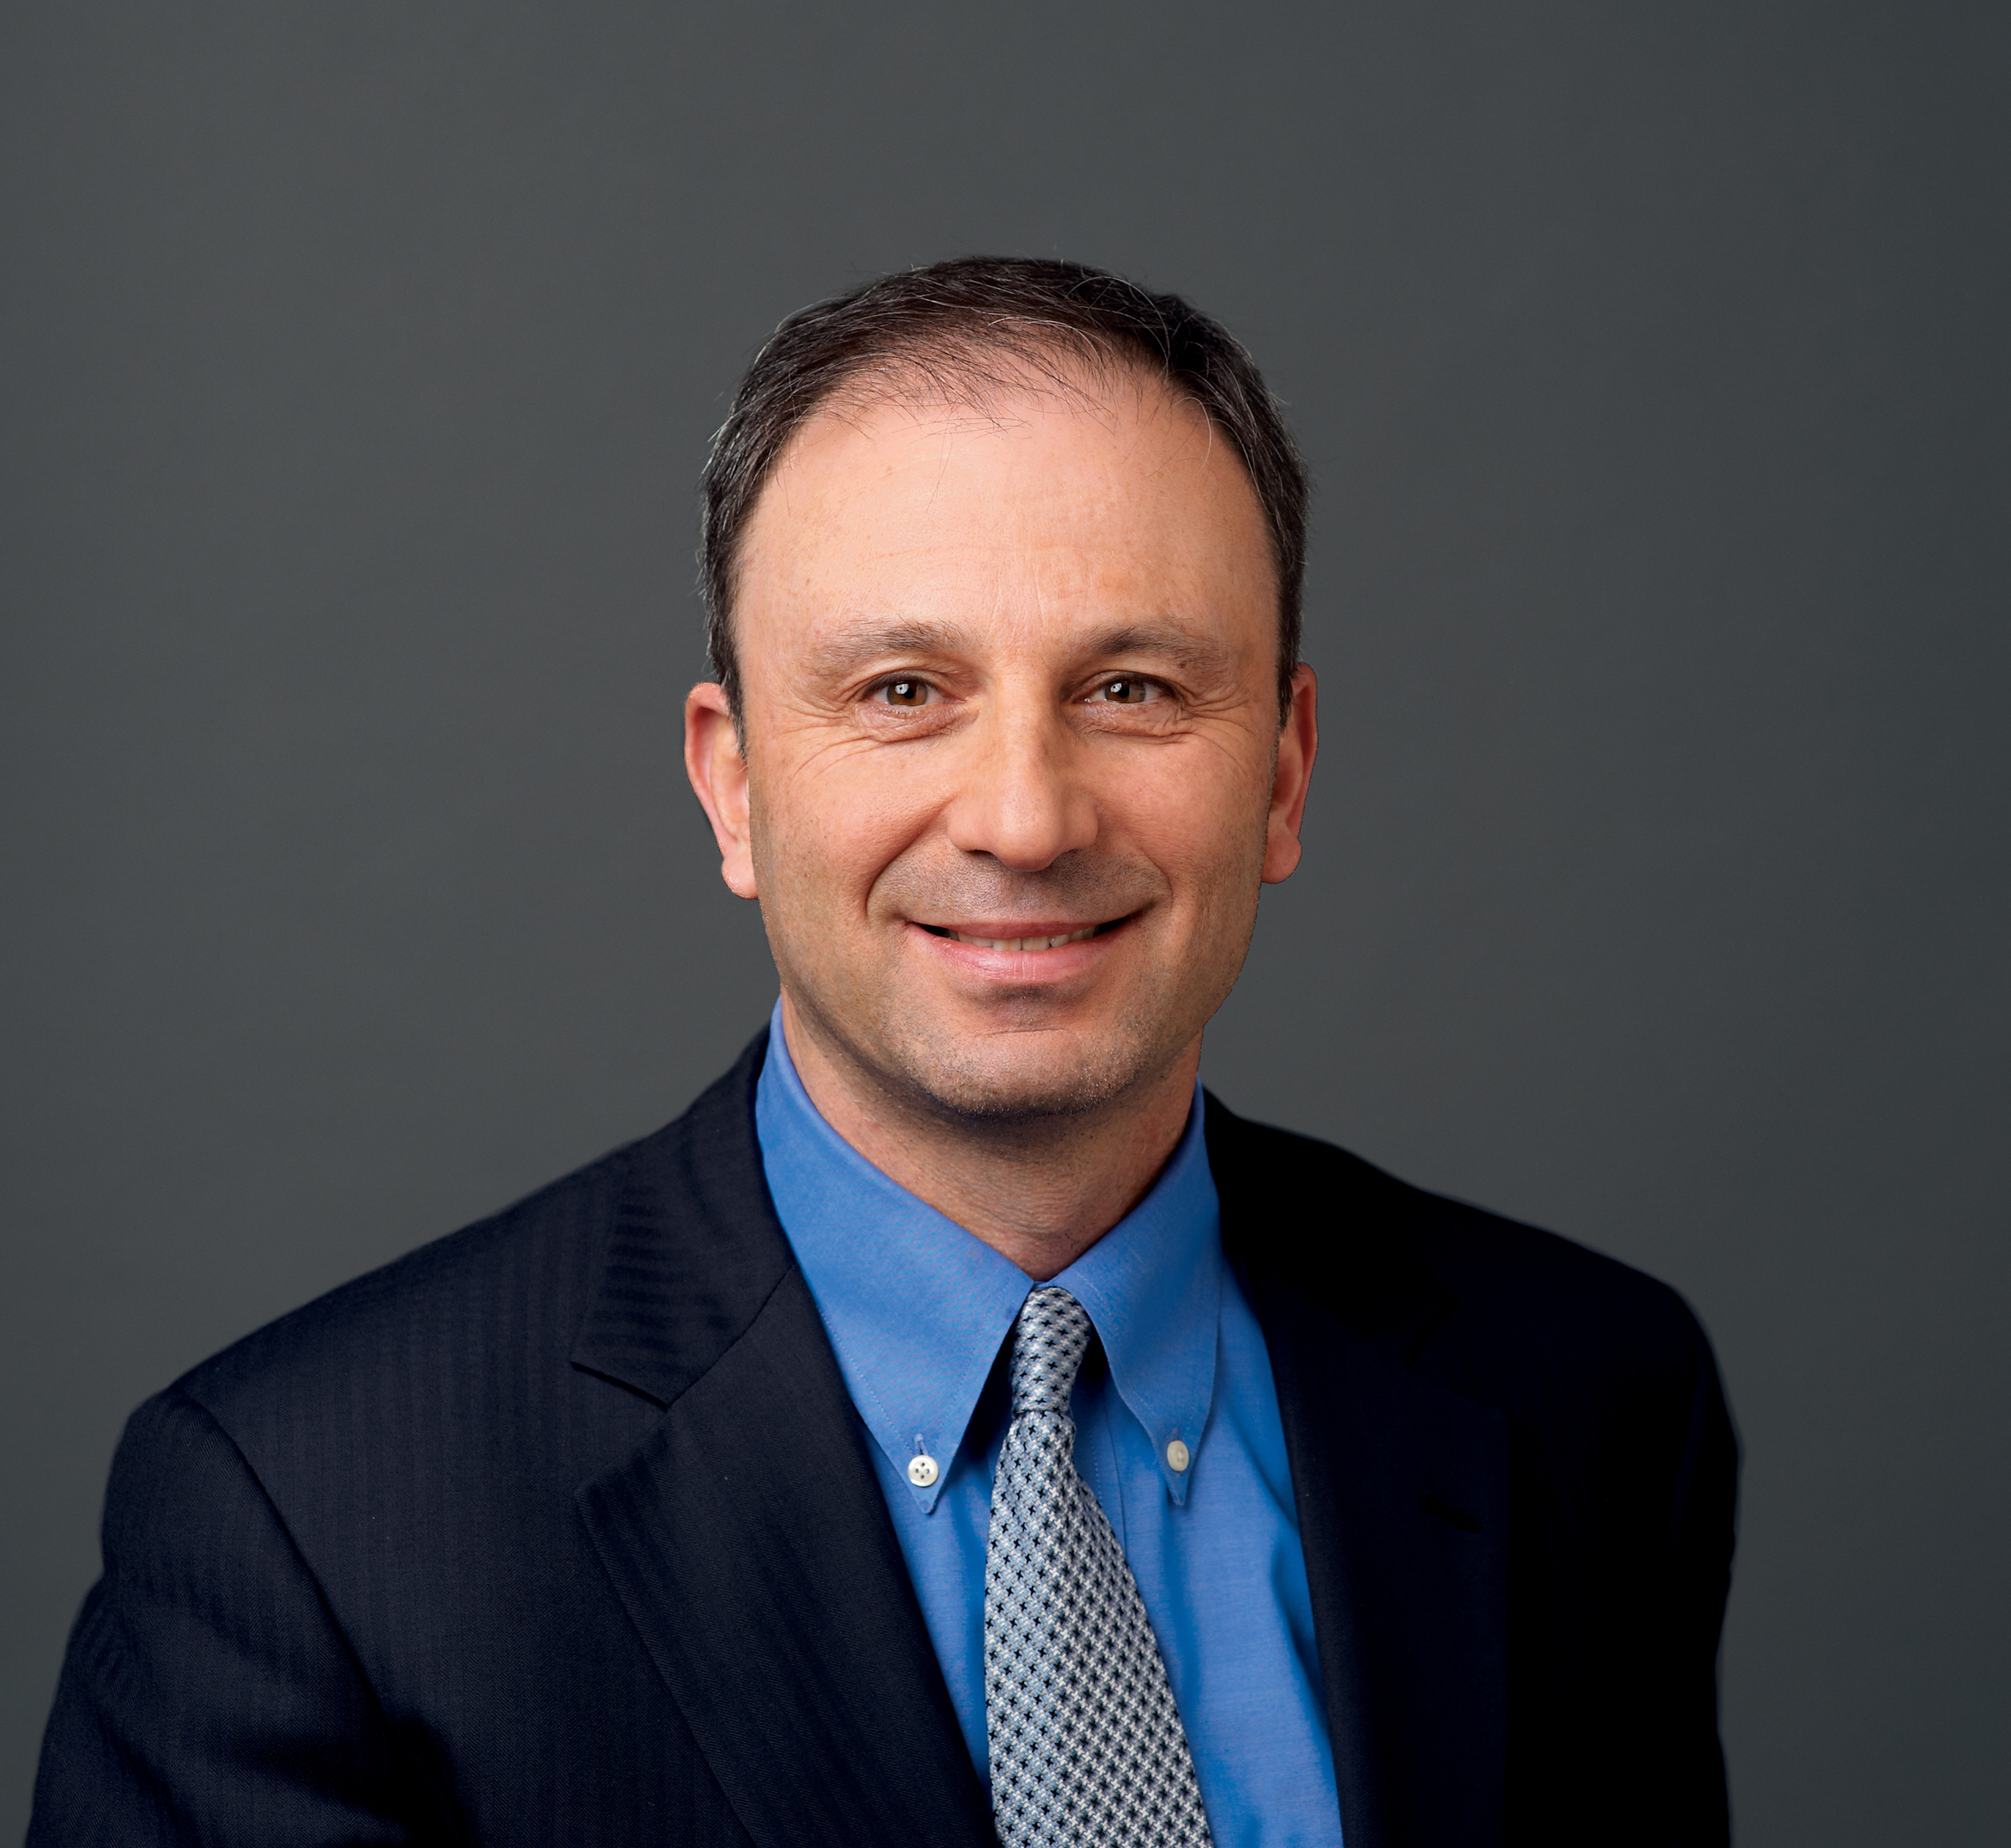 Mikael Dolsten, M.D., Ph.D., President of Worldwide R&D at Pfizer (Photo: Business Wire)